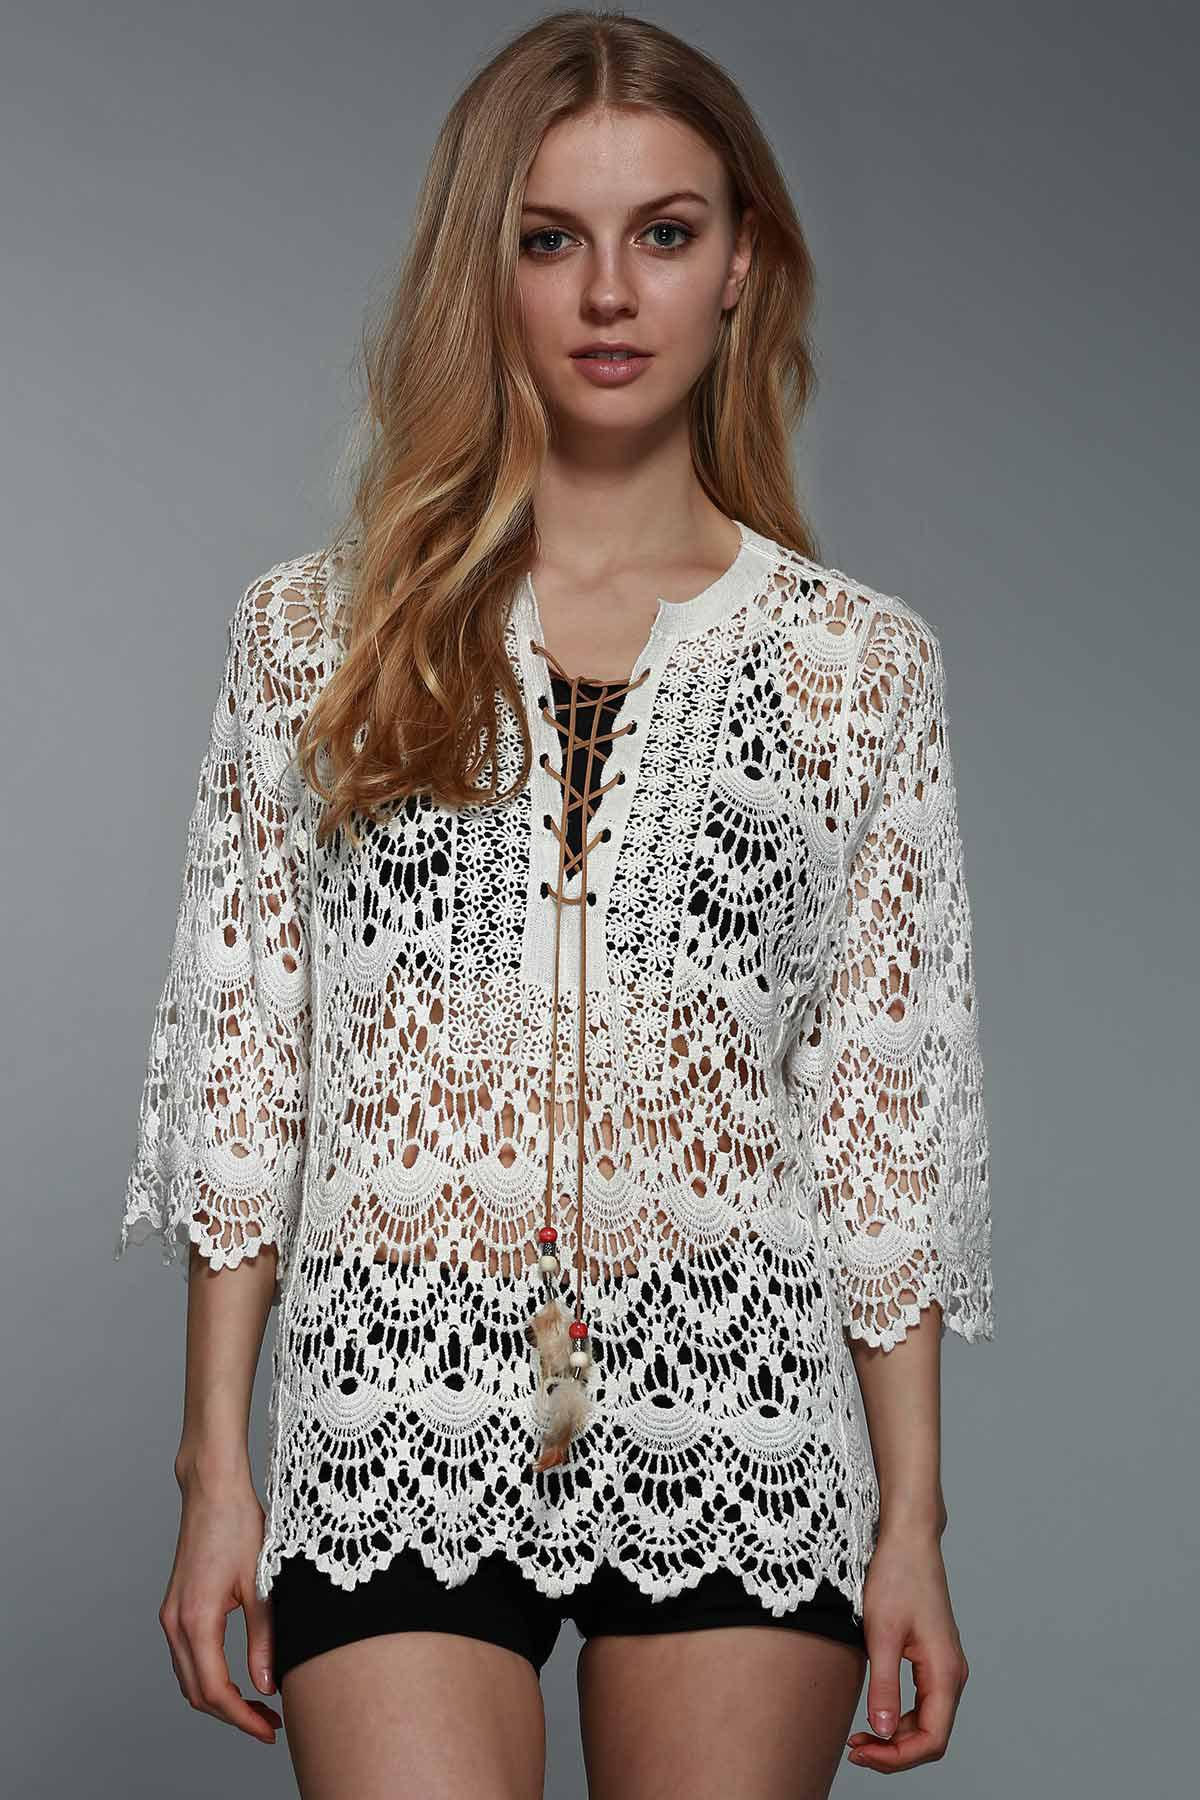 Graceful Round Collar 3/4 Sleeve Hollow Out Lace-Up Crochet Women's White Blouse